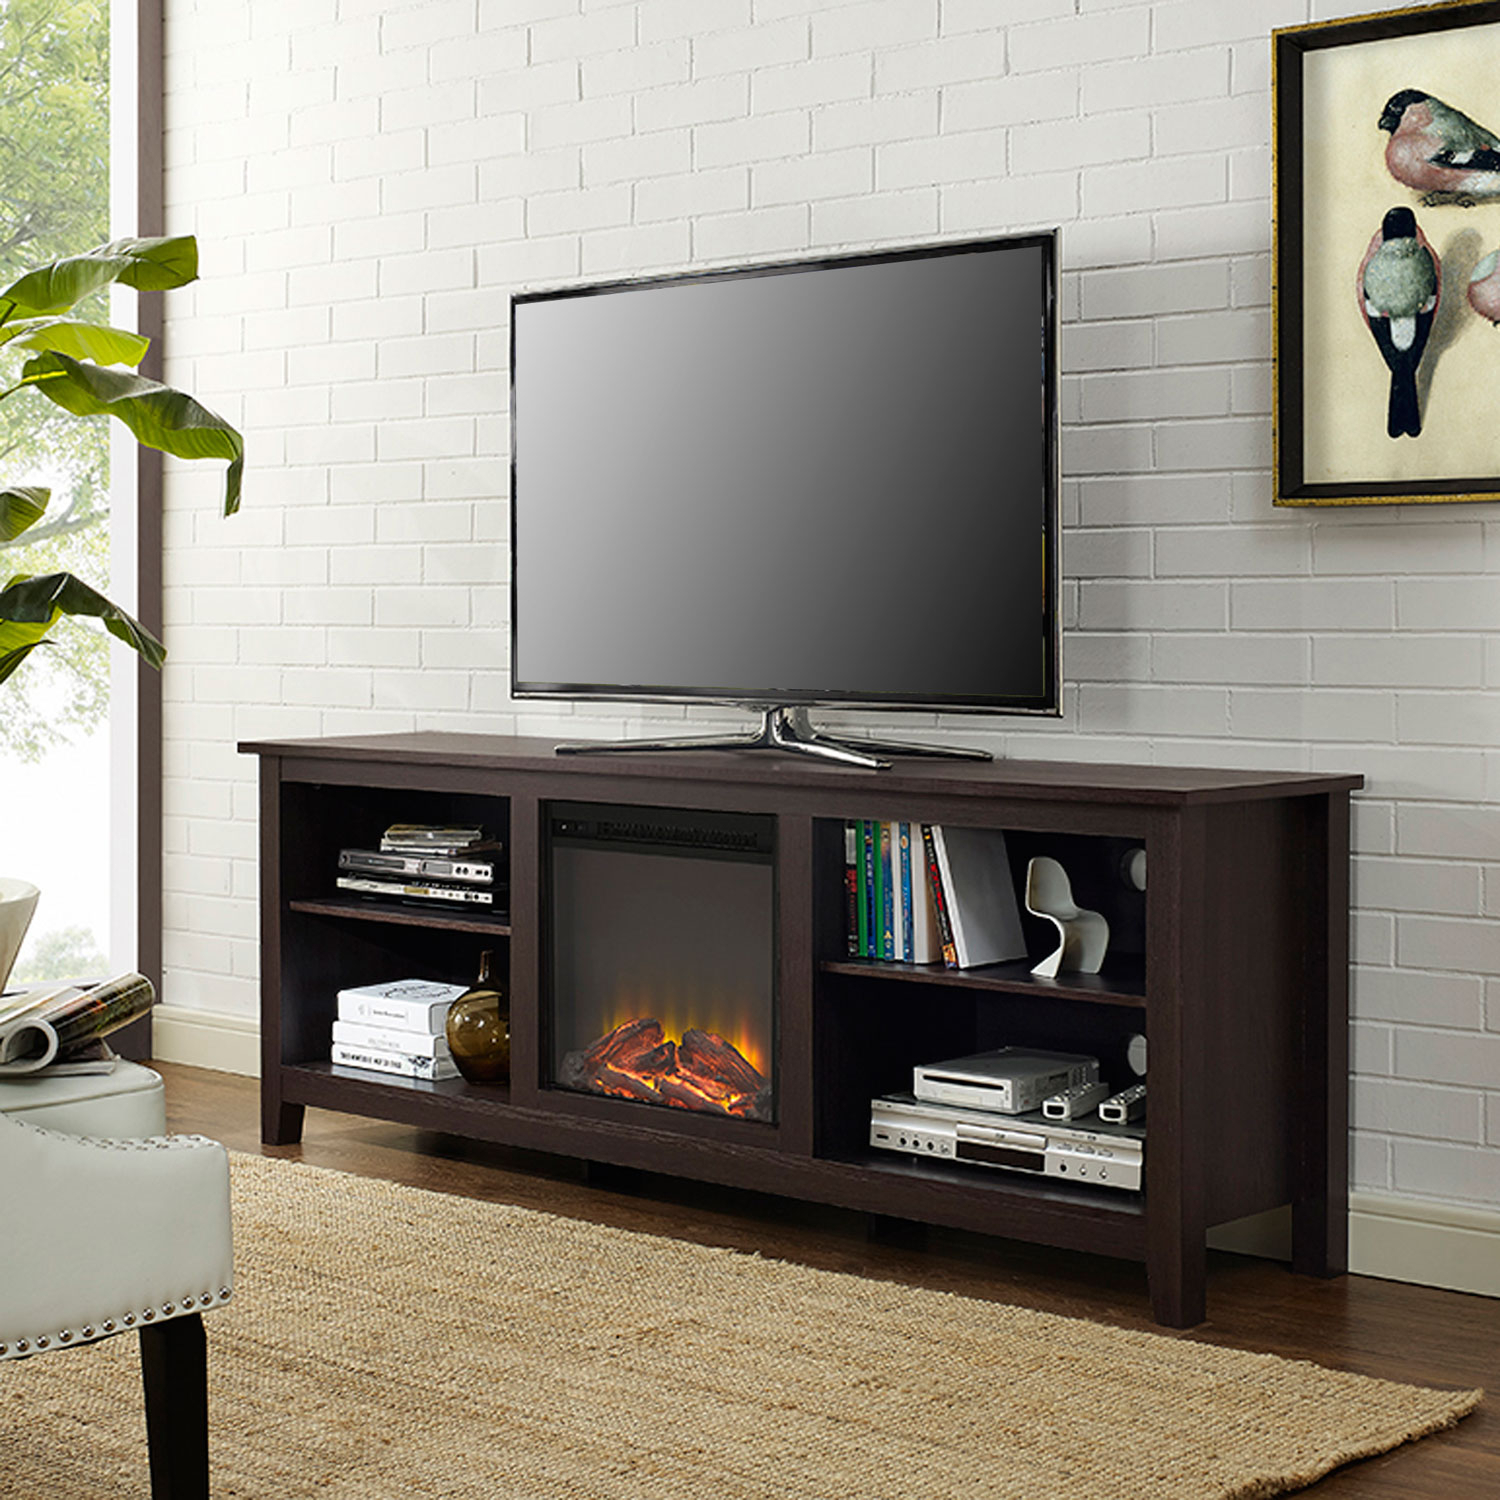 Walker Edison Furniture Co. 70 Inch Fireplace Tv Stand Espresso inside Valencia 70 Inch Tv Stands (Image 29 of 30)